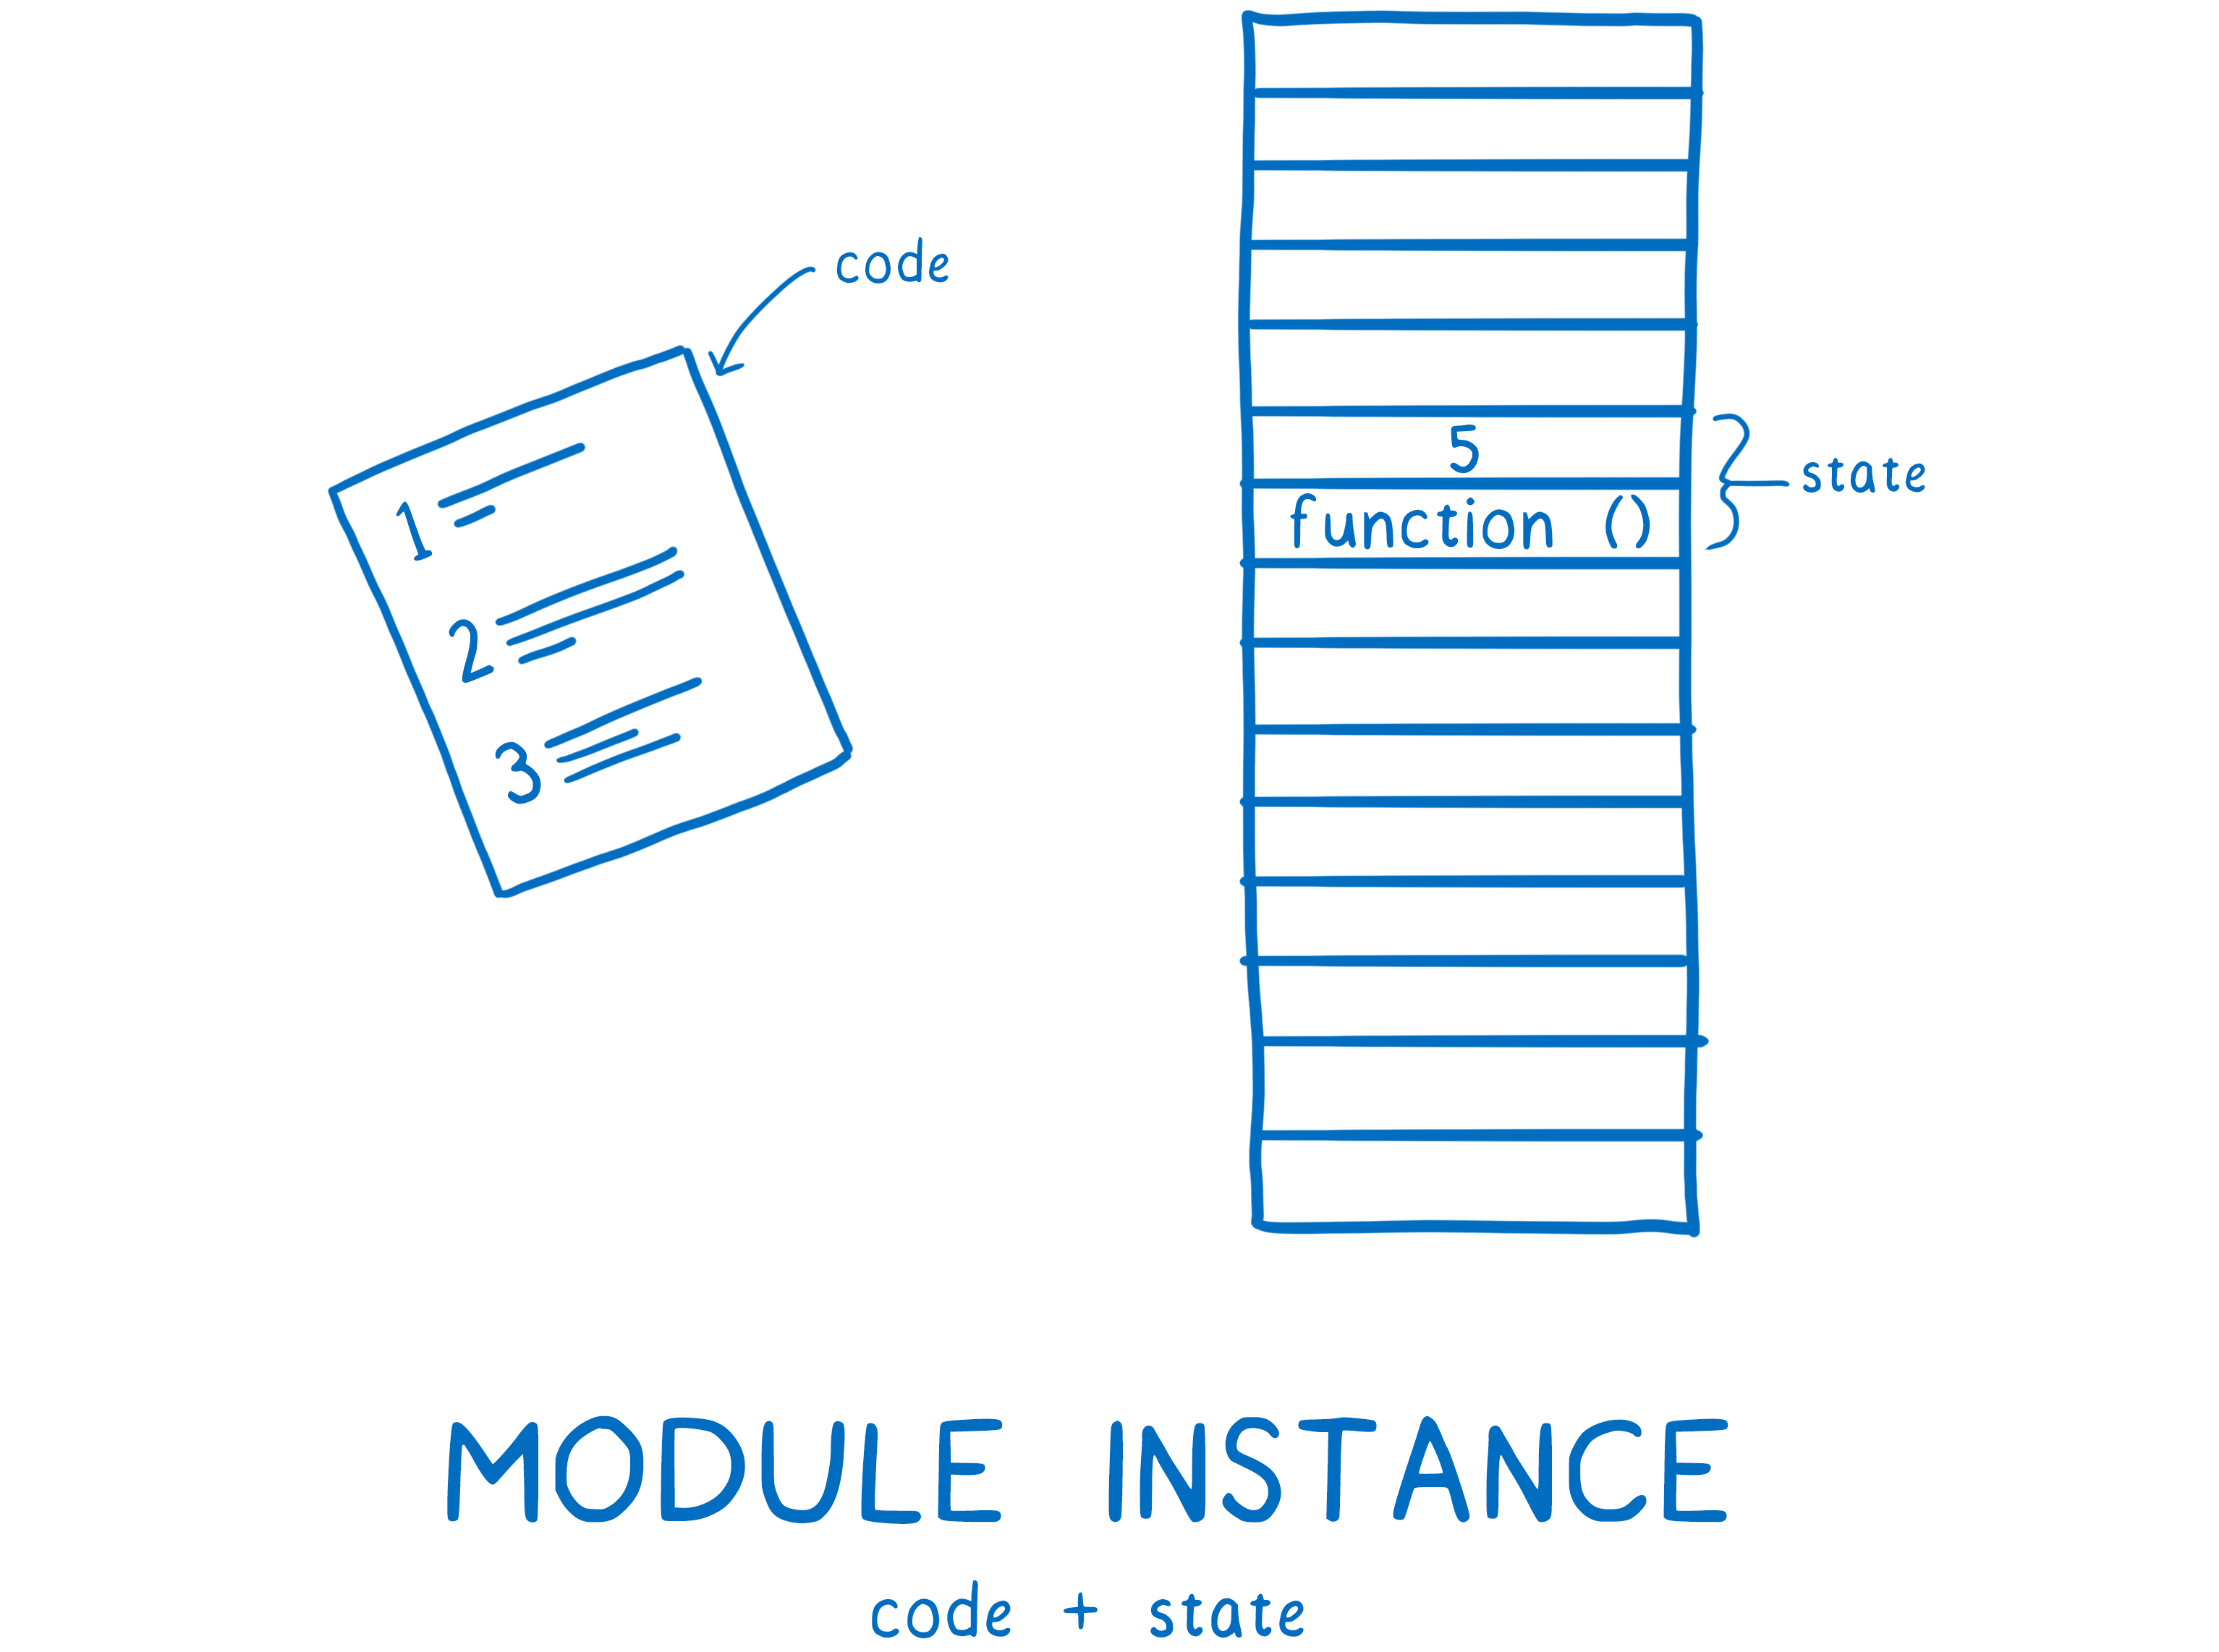 06_module_instance.png